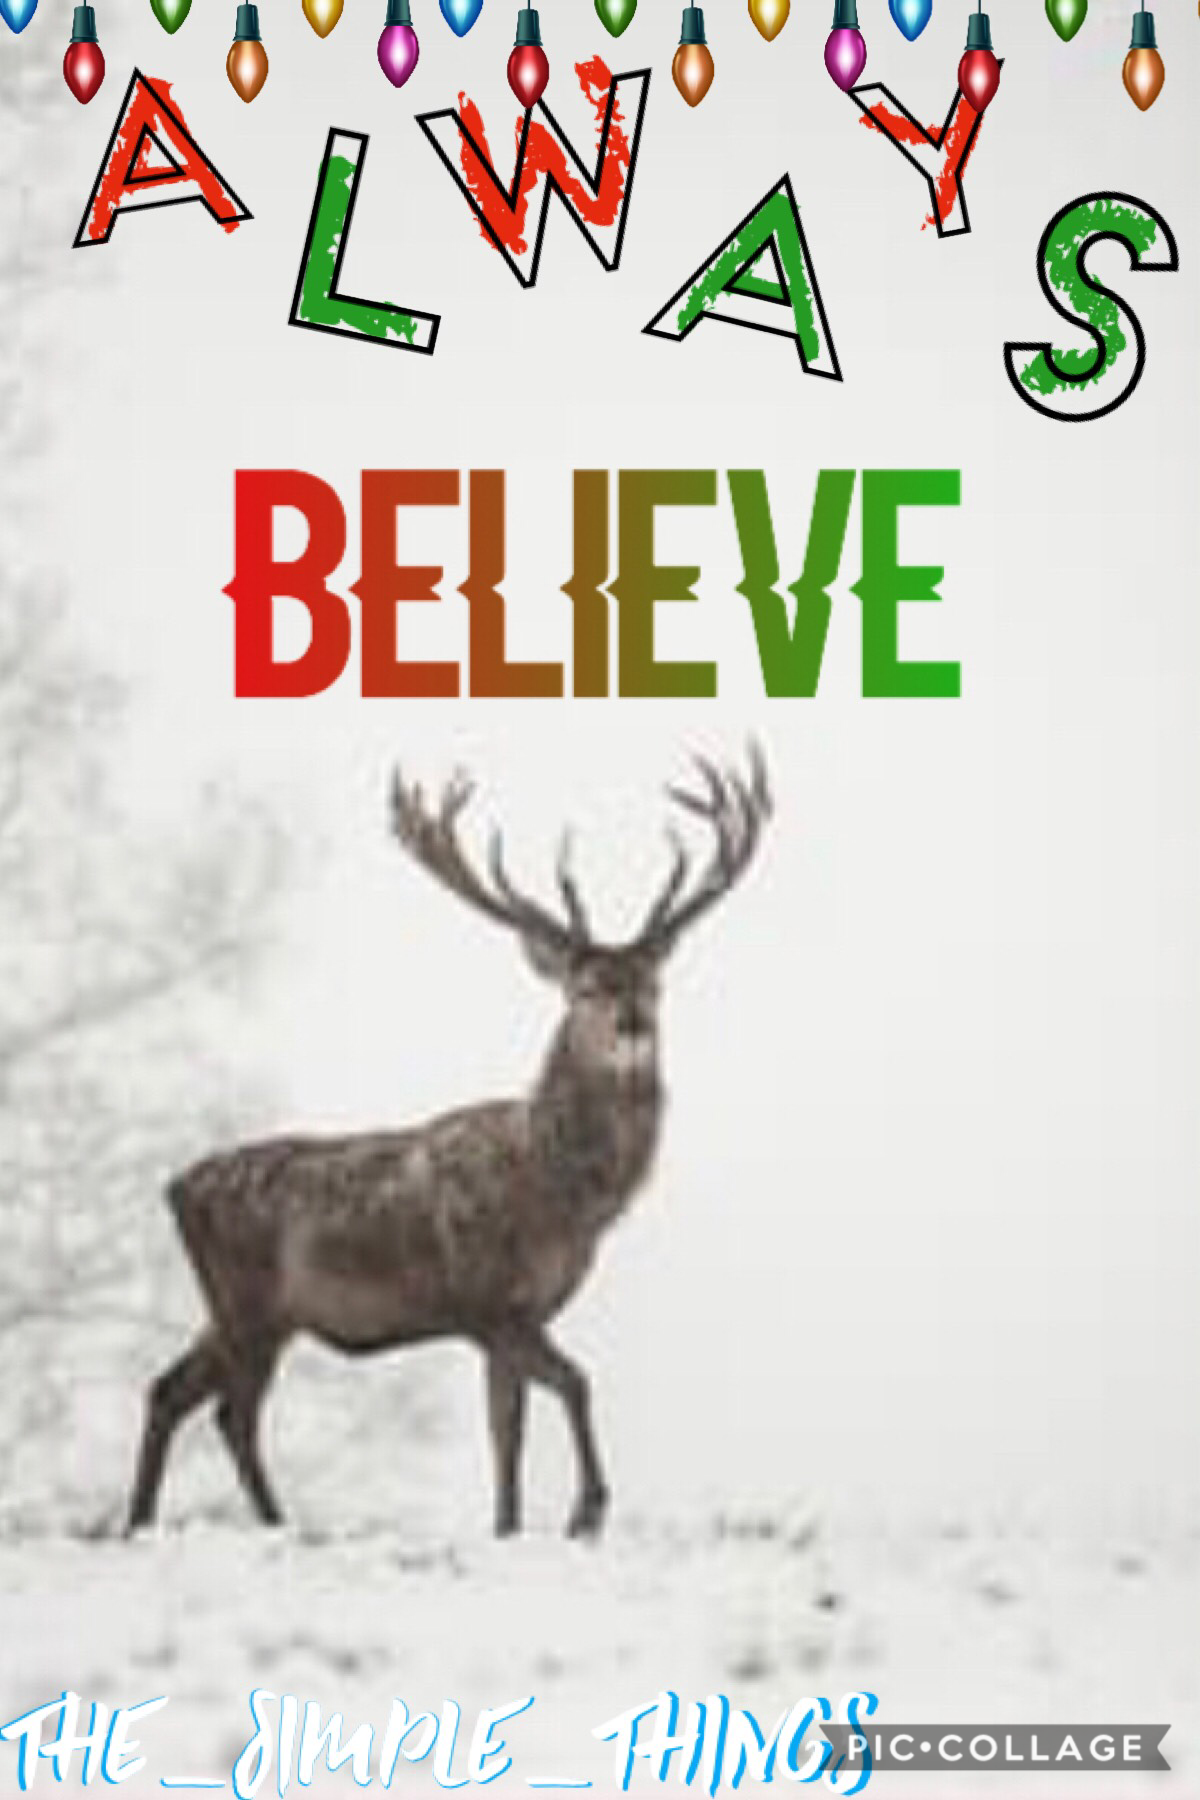 Always Believe! QOTD: Would you like to collab? AOTD: It's up to you!  If you would like to collab the theme is Christmas/Winter